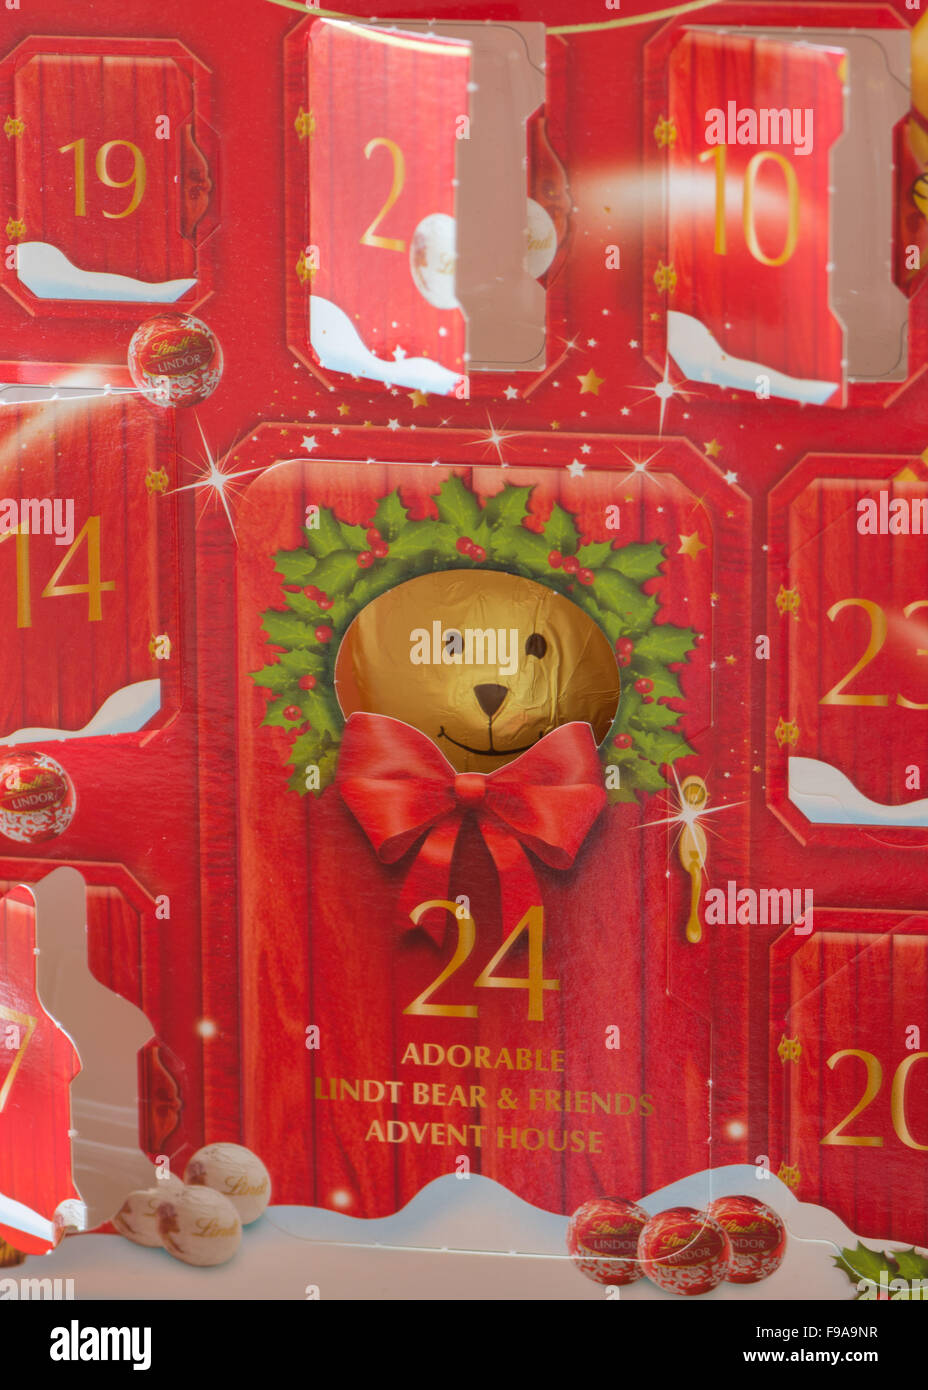 Partially opened Lindt chocolate teddy christmas advent calendar - Stock Image